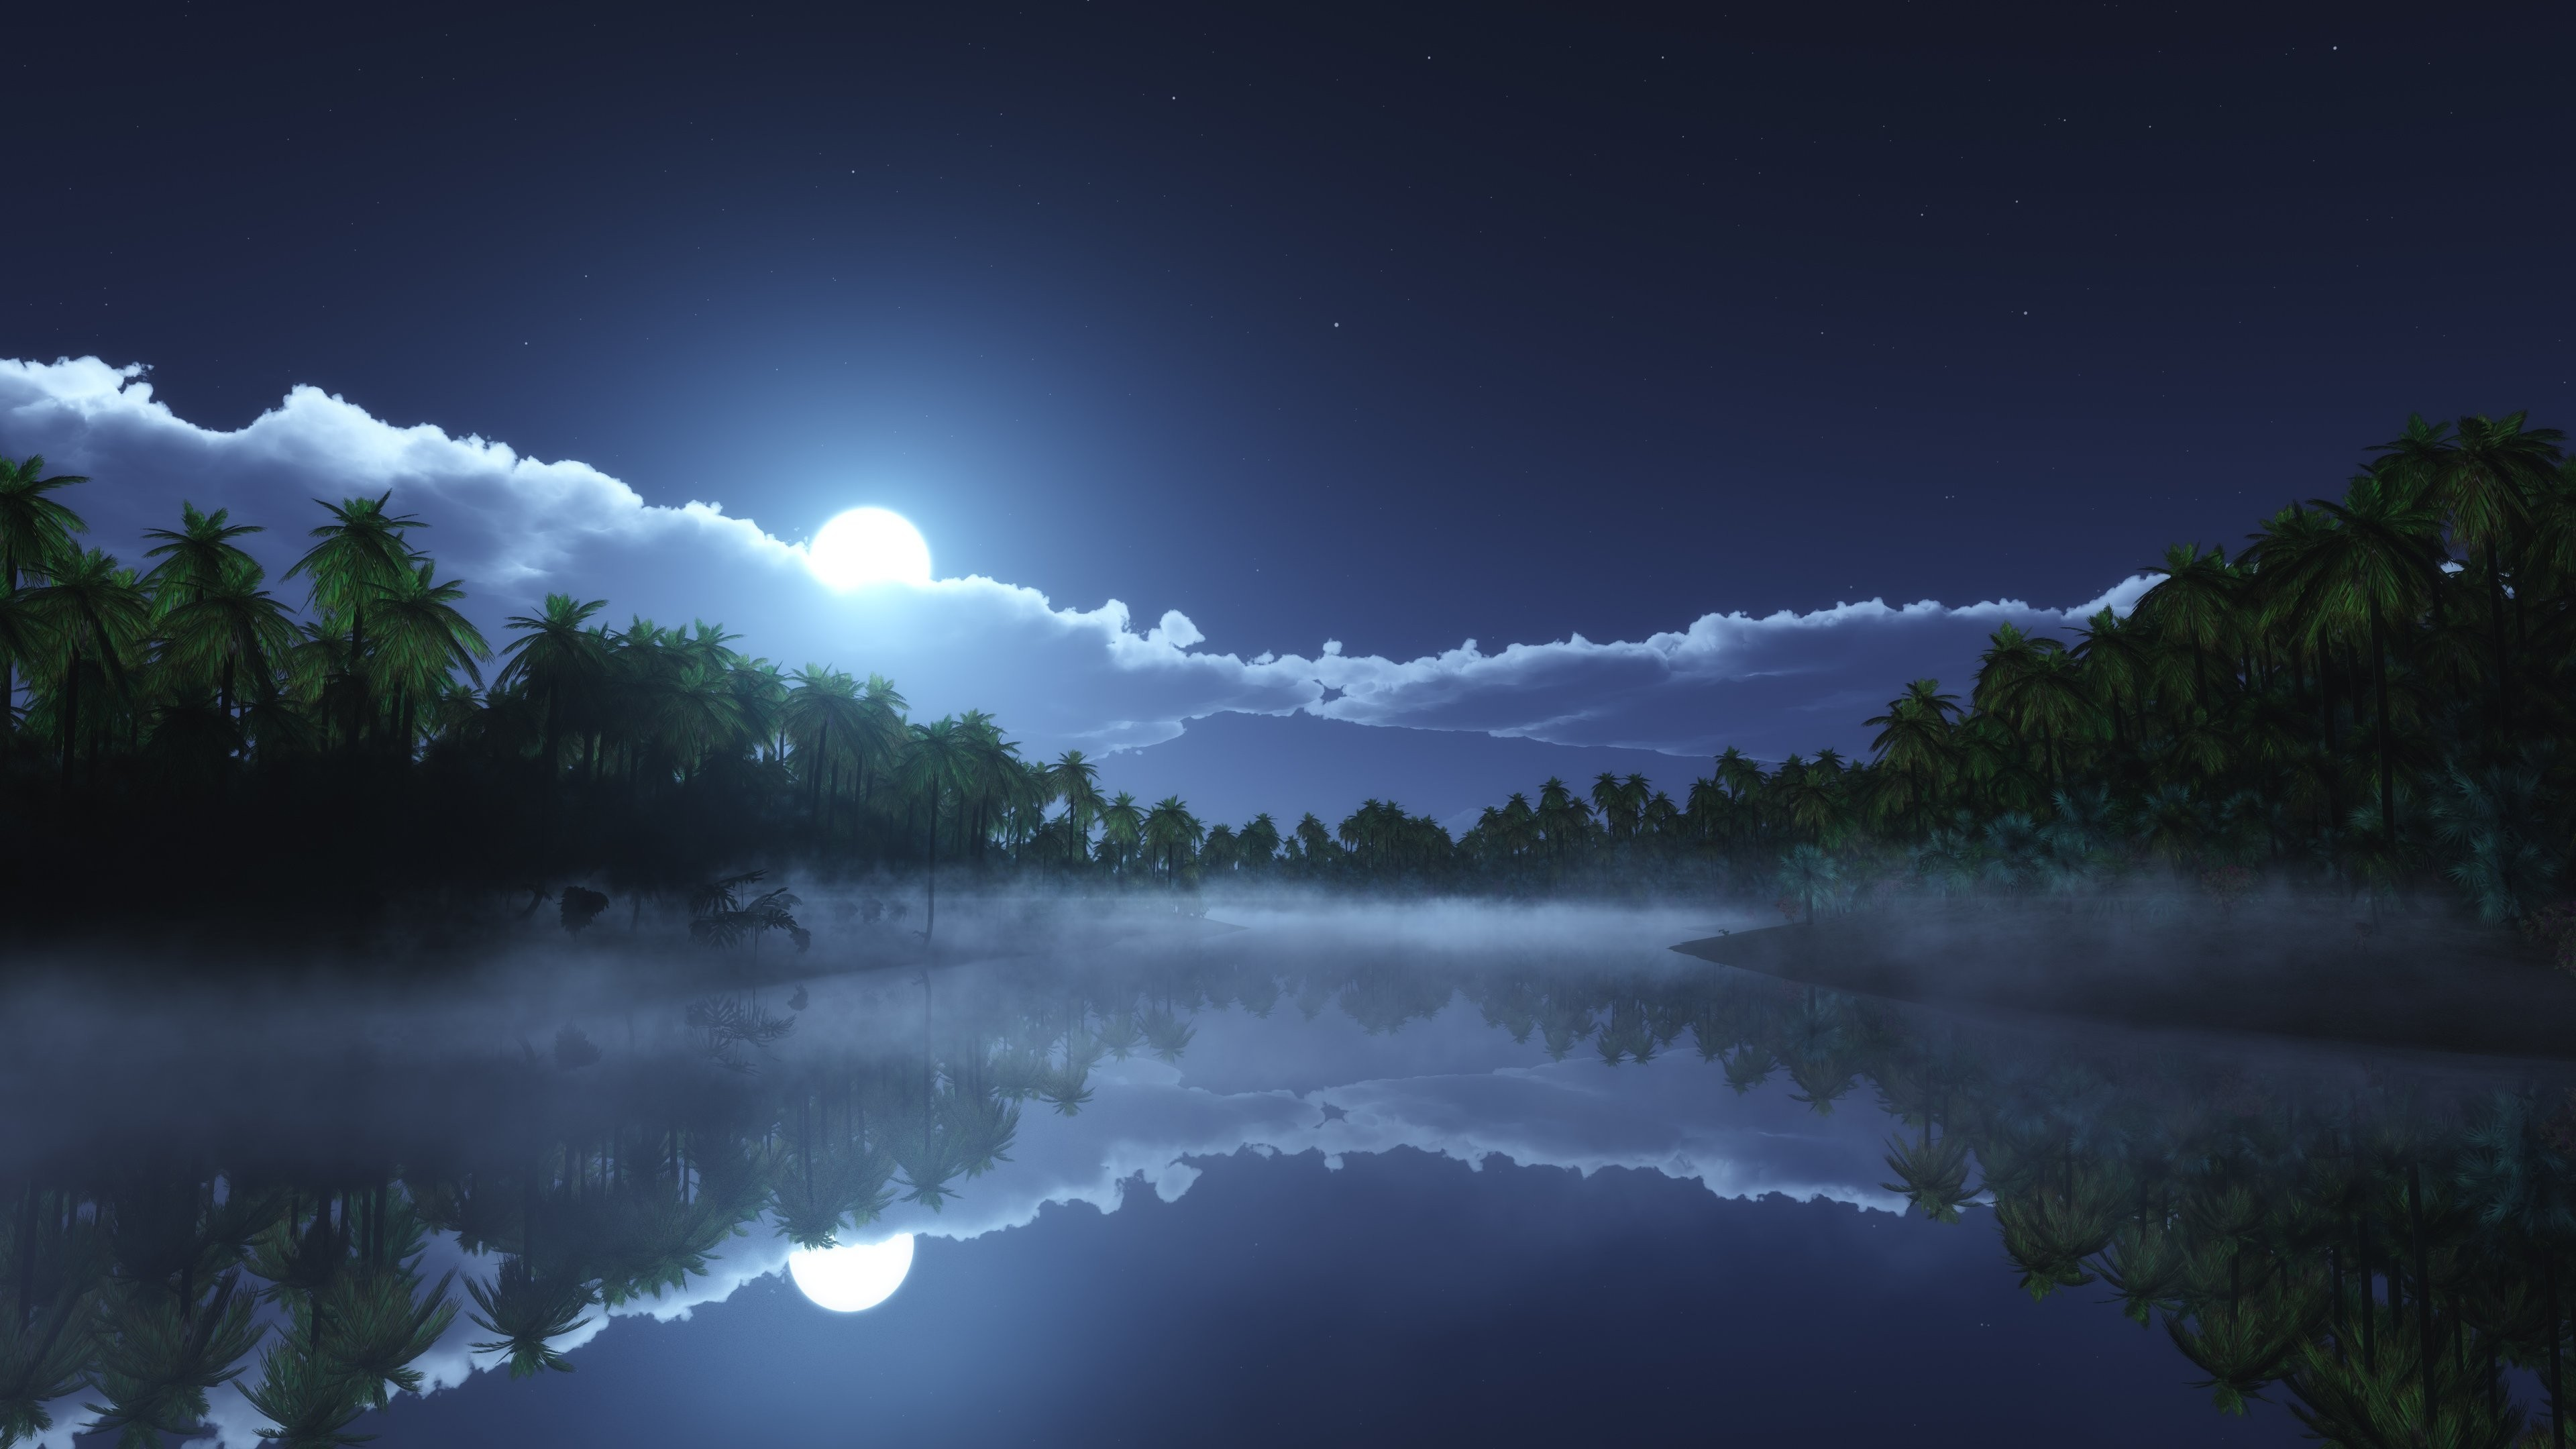 Wallpaper River 4k Hd Wallpaper Sea Palms Night Moon Clouds Nature 5714